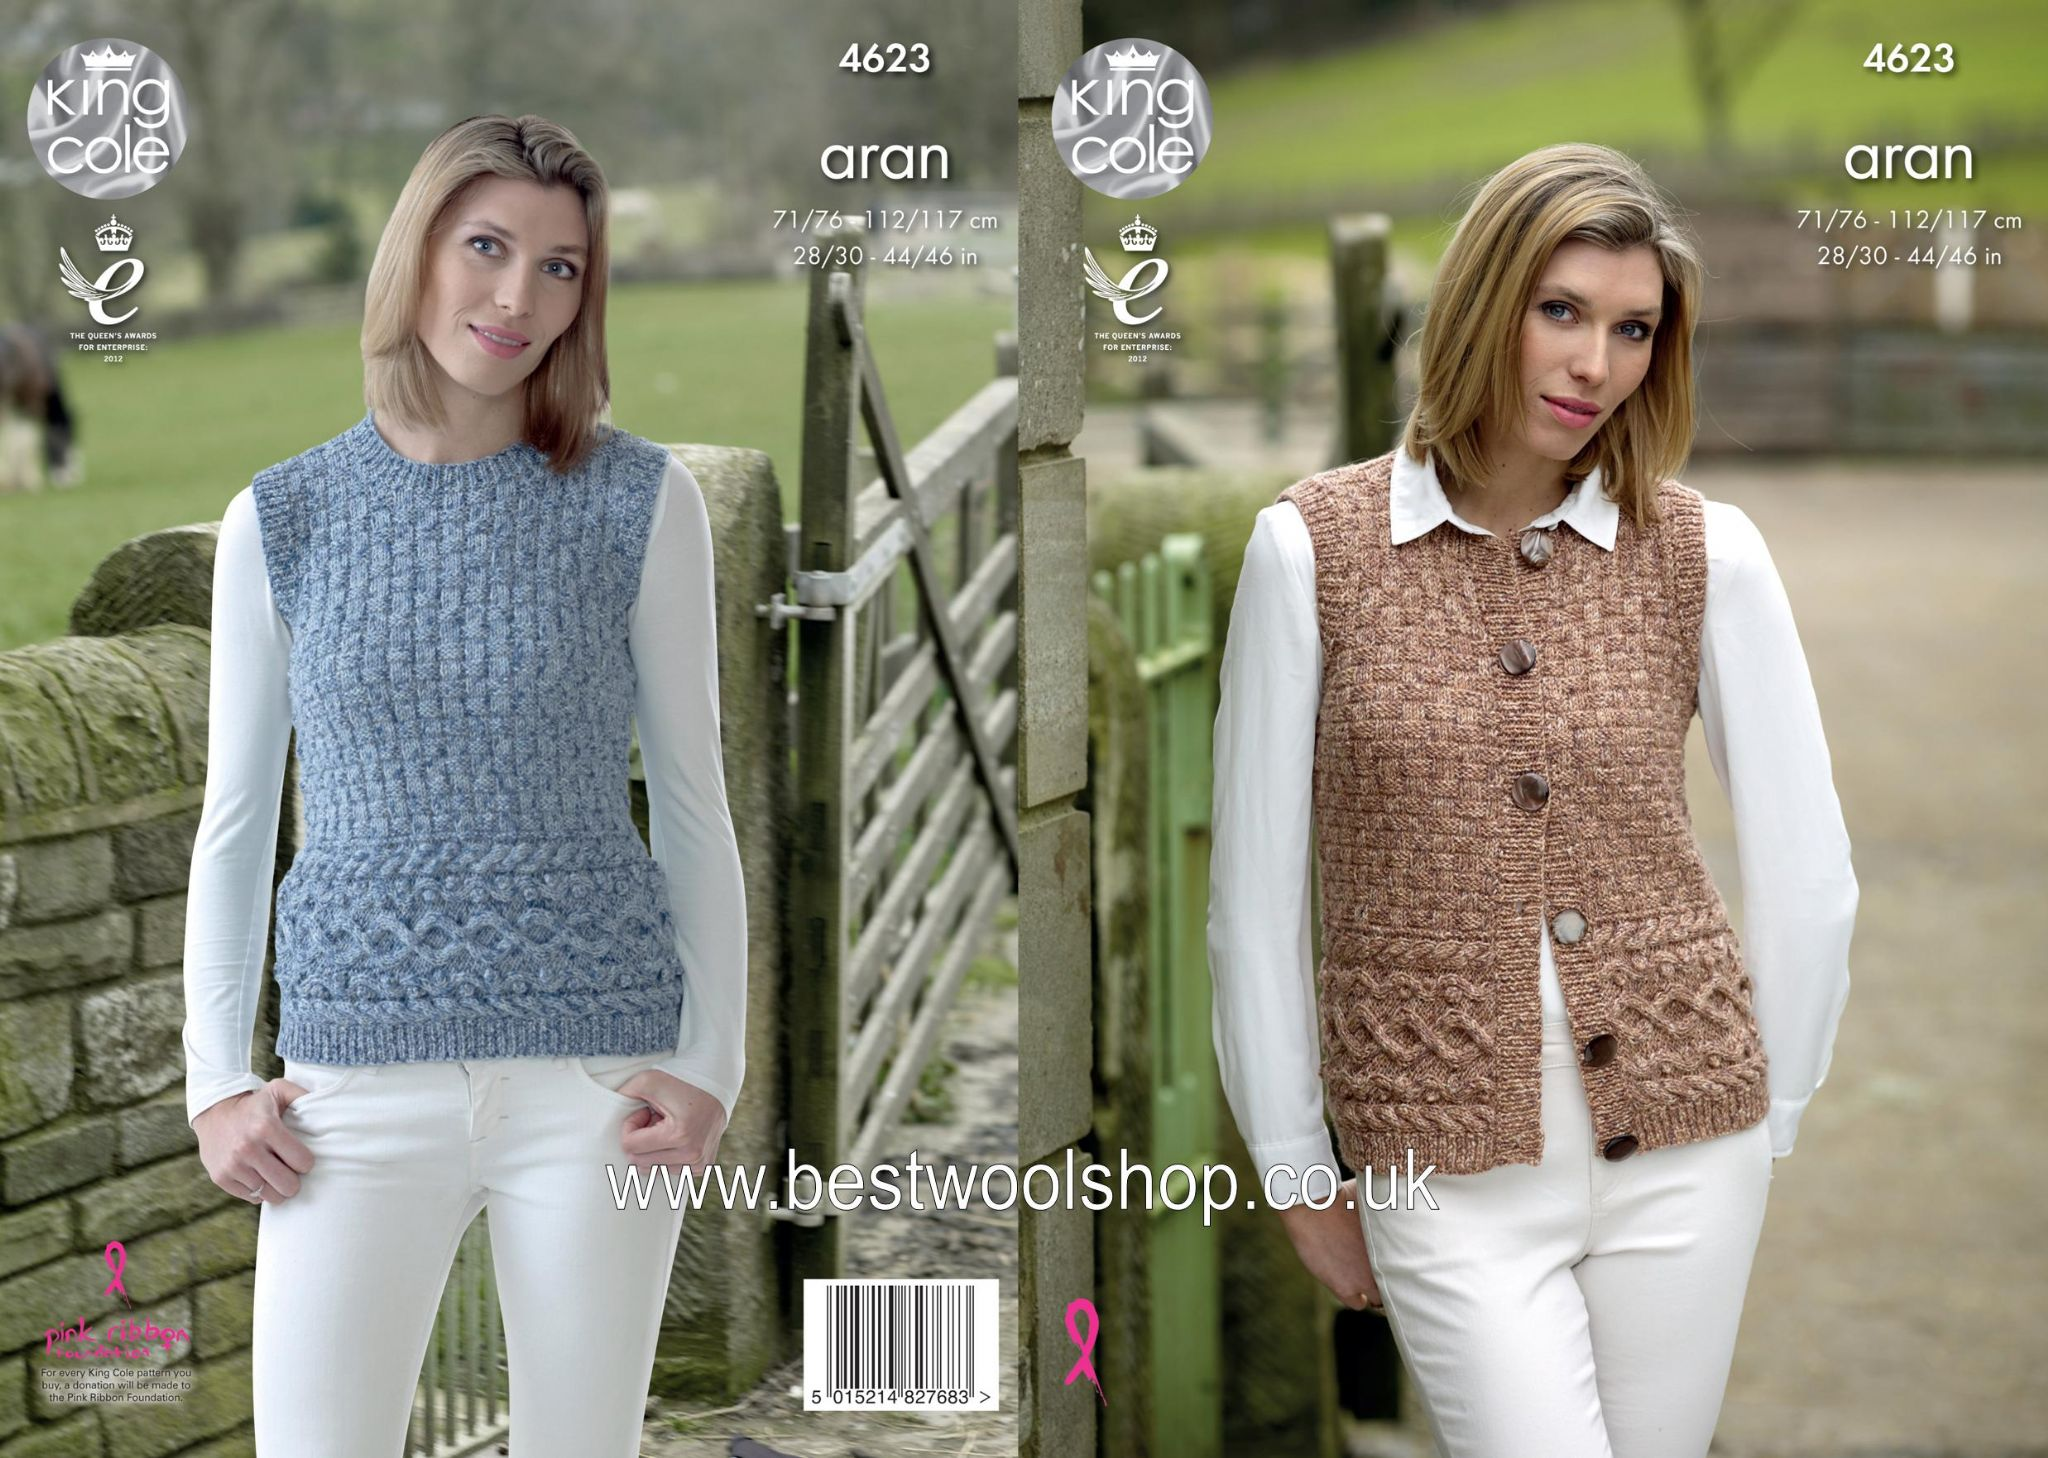 4623 - KING COLE FASHION ARAN COMBO WAISTCOAT & TANK TOP SLEEVELESS ...